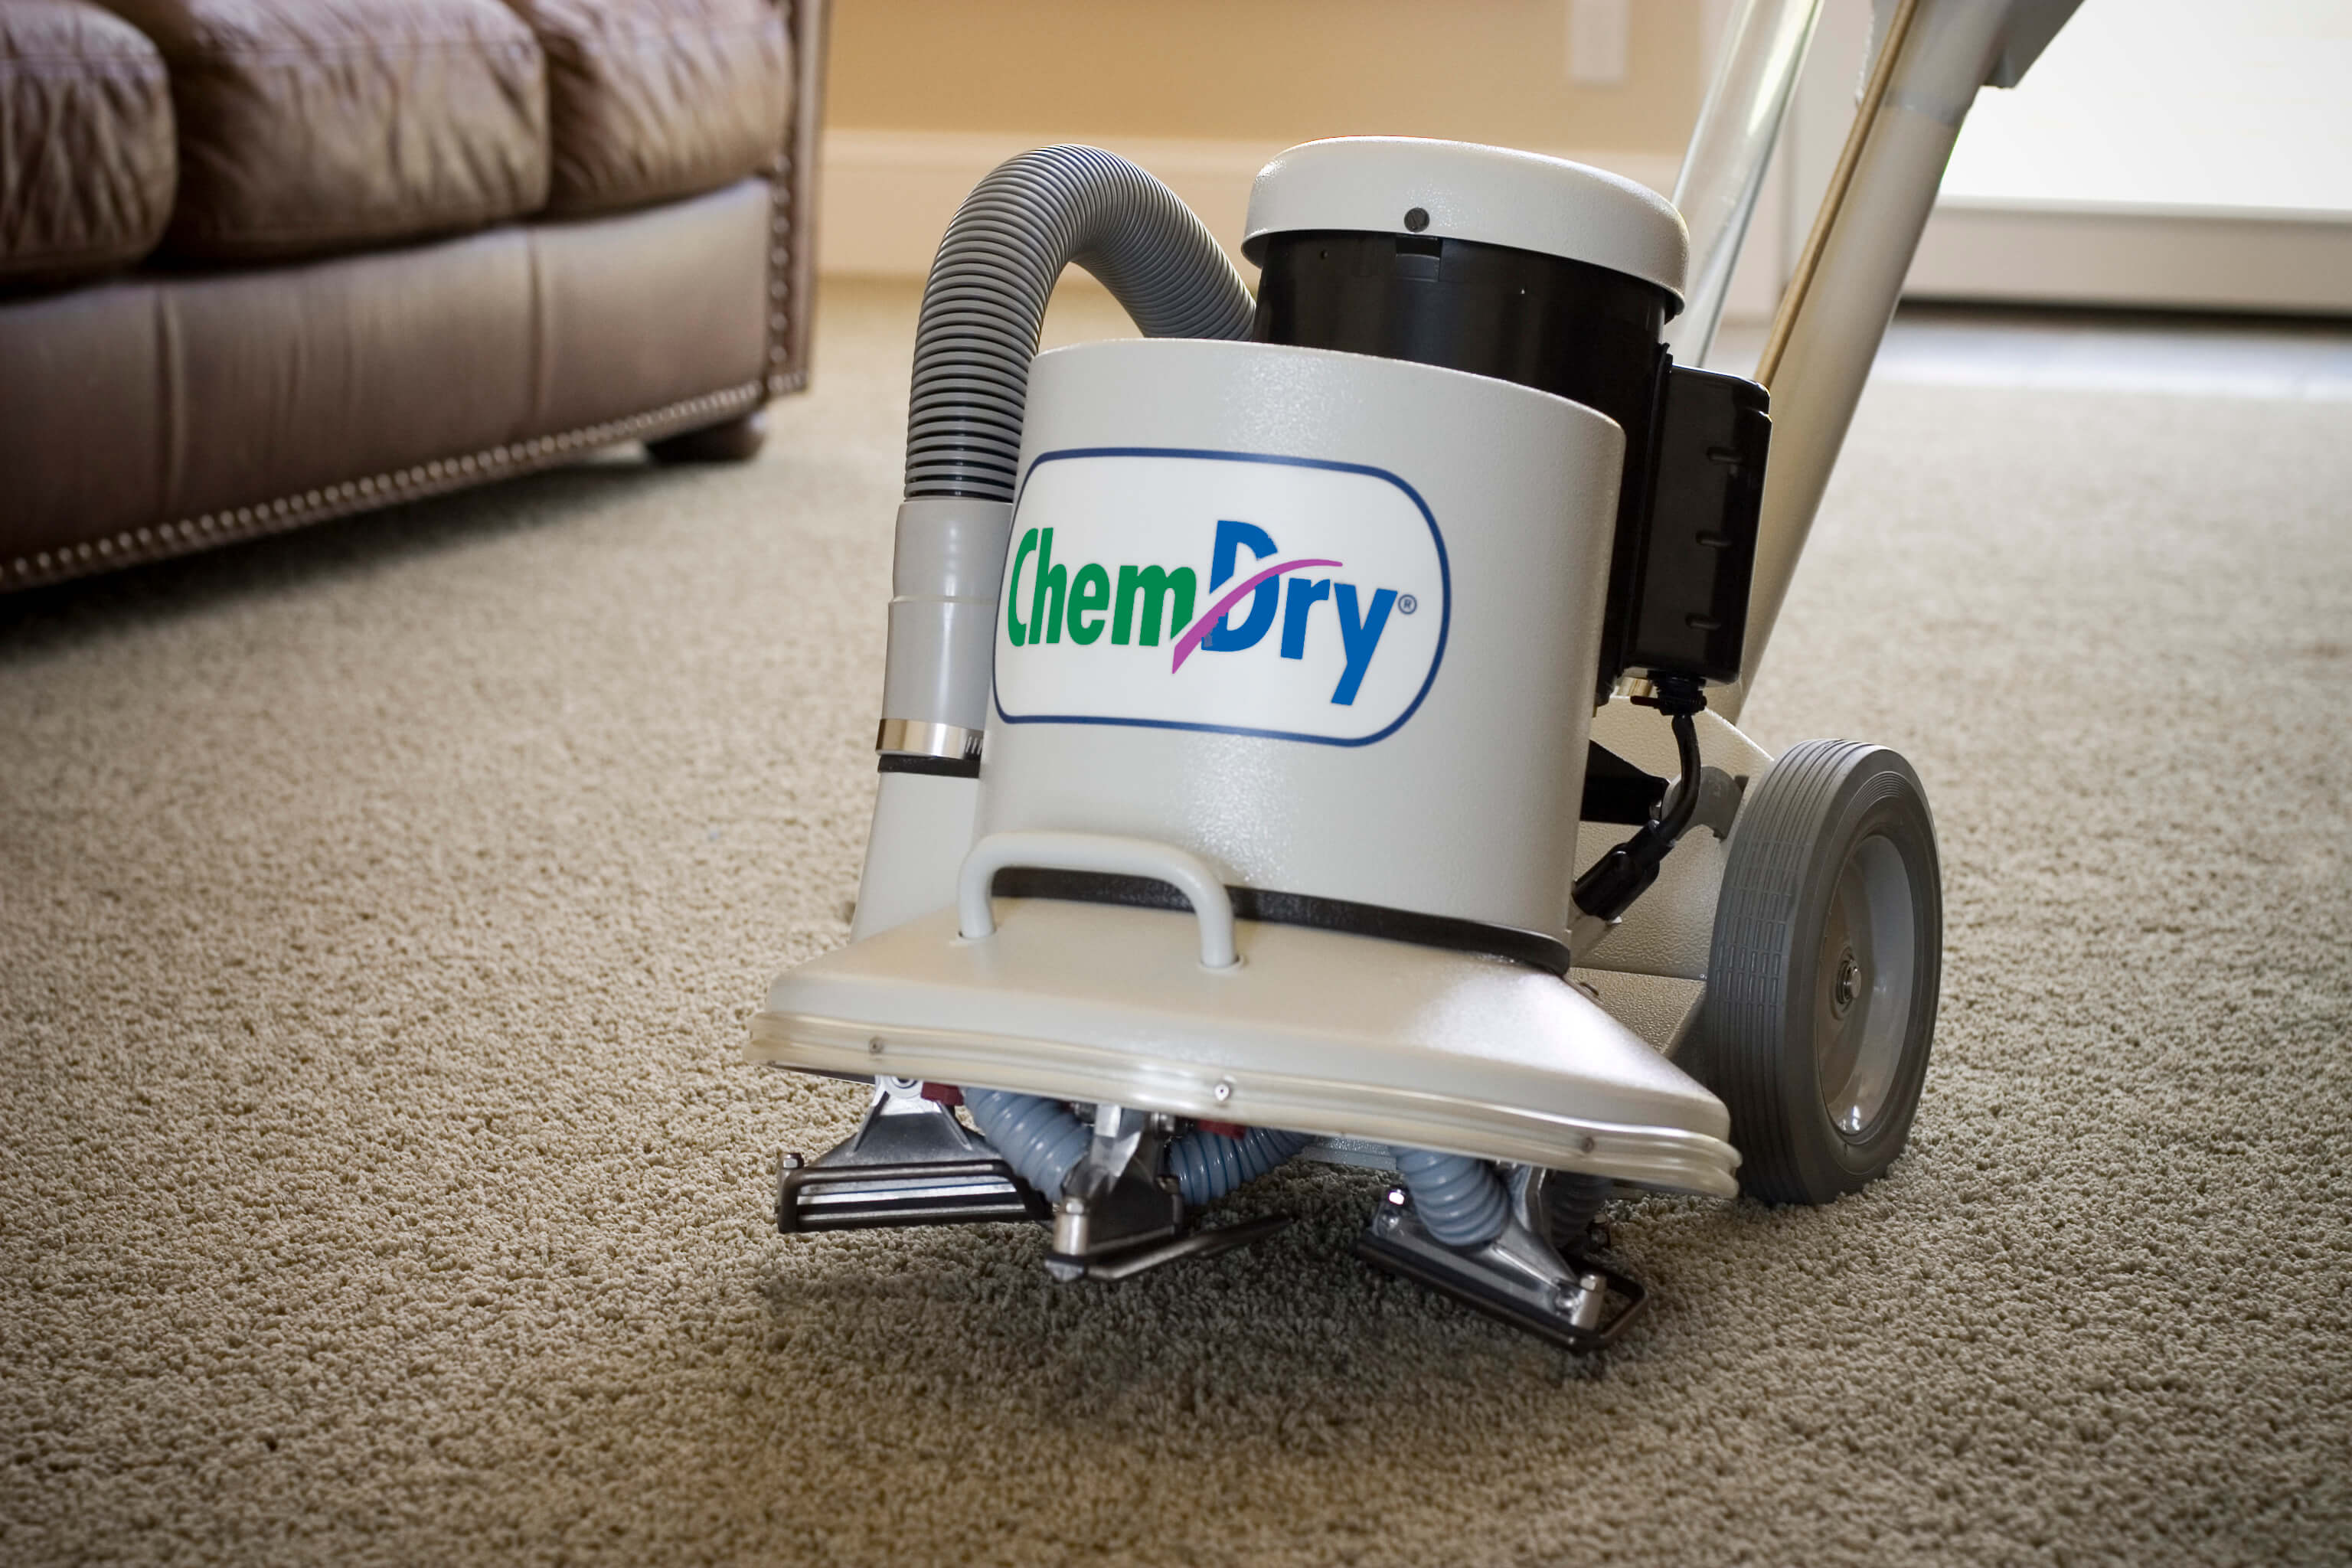 chem dry carpet cleaning greensboro